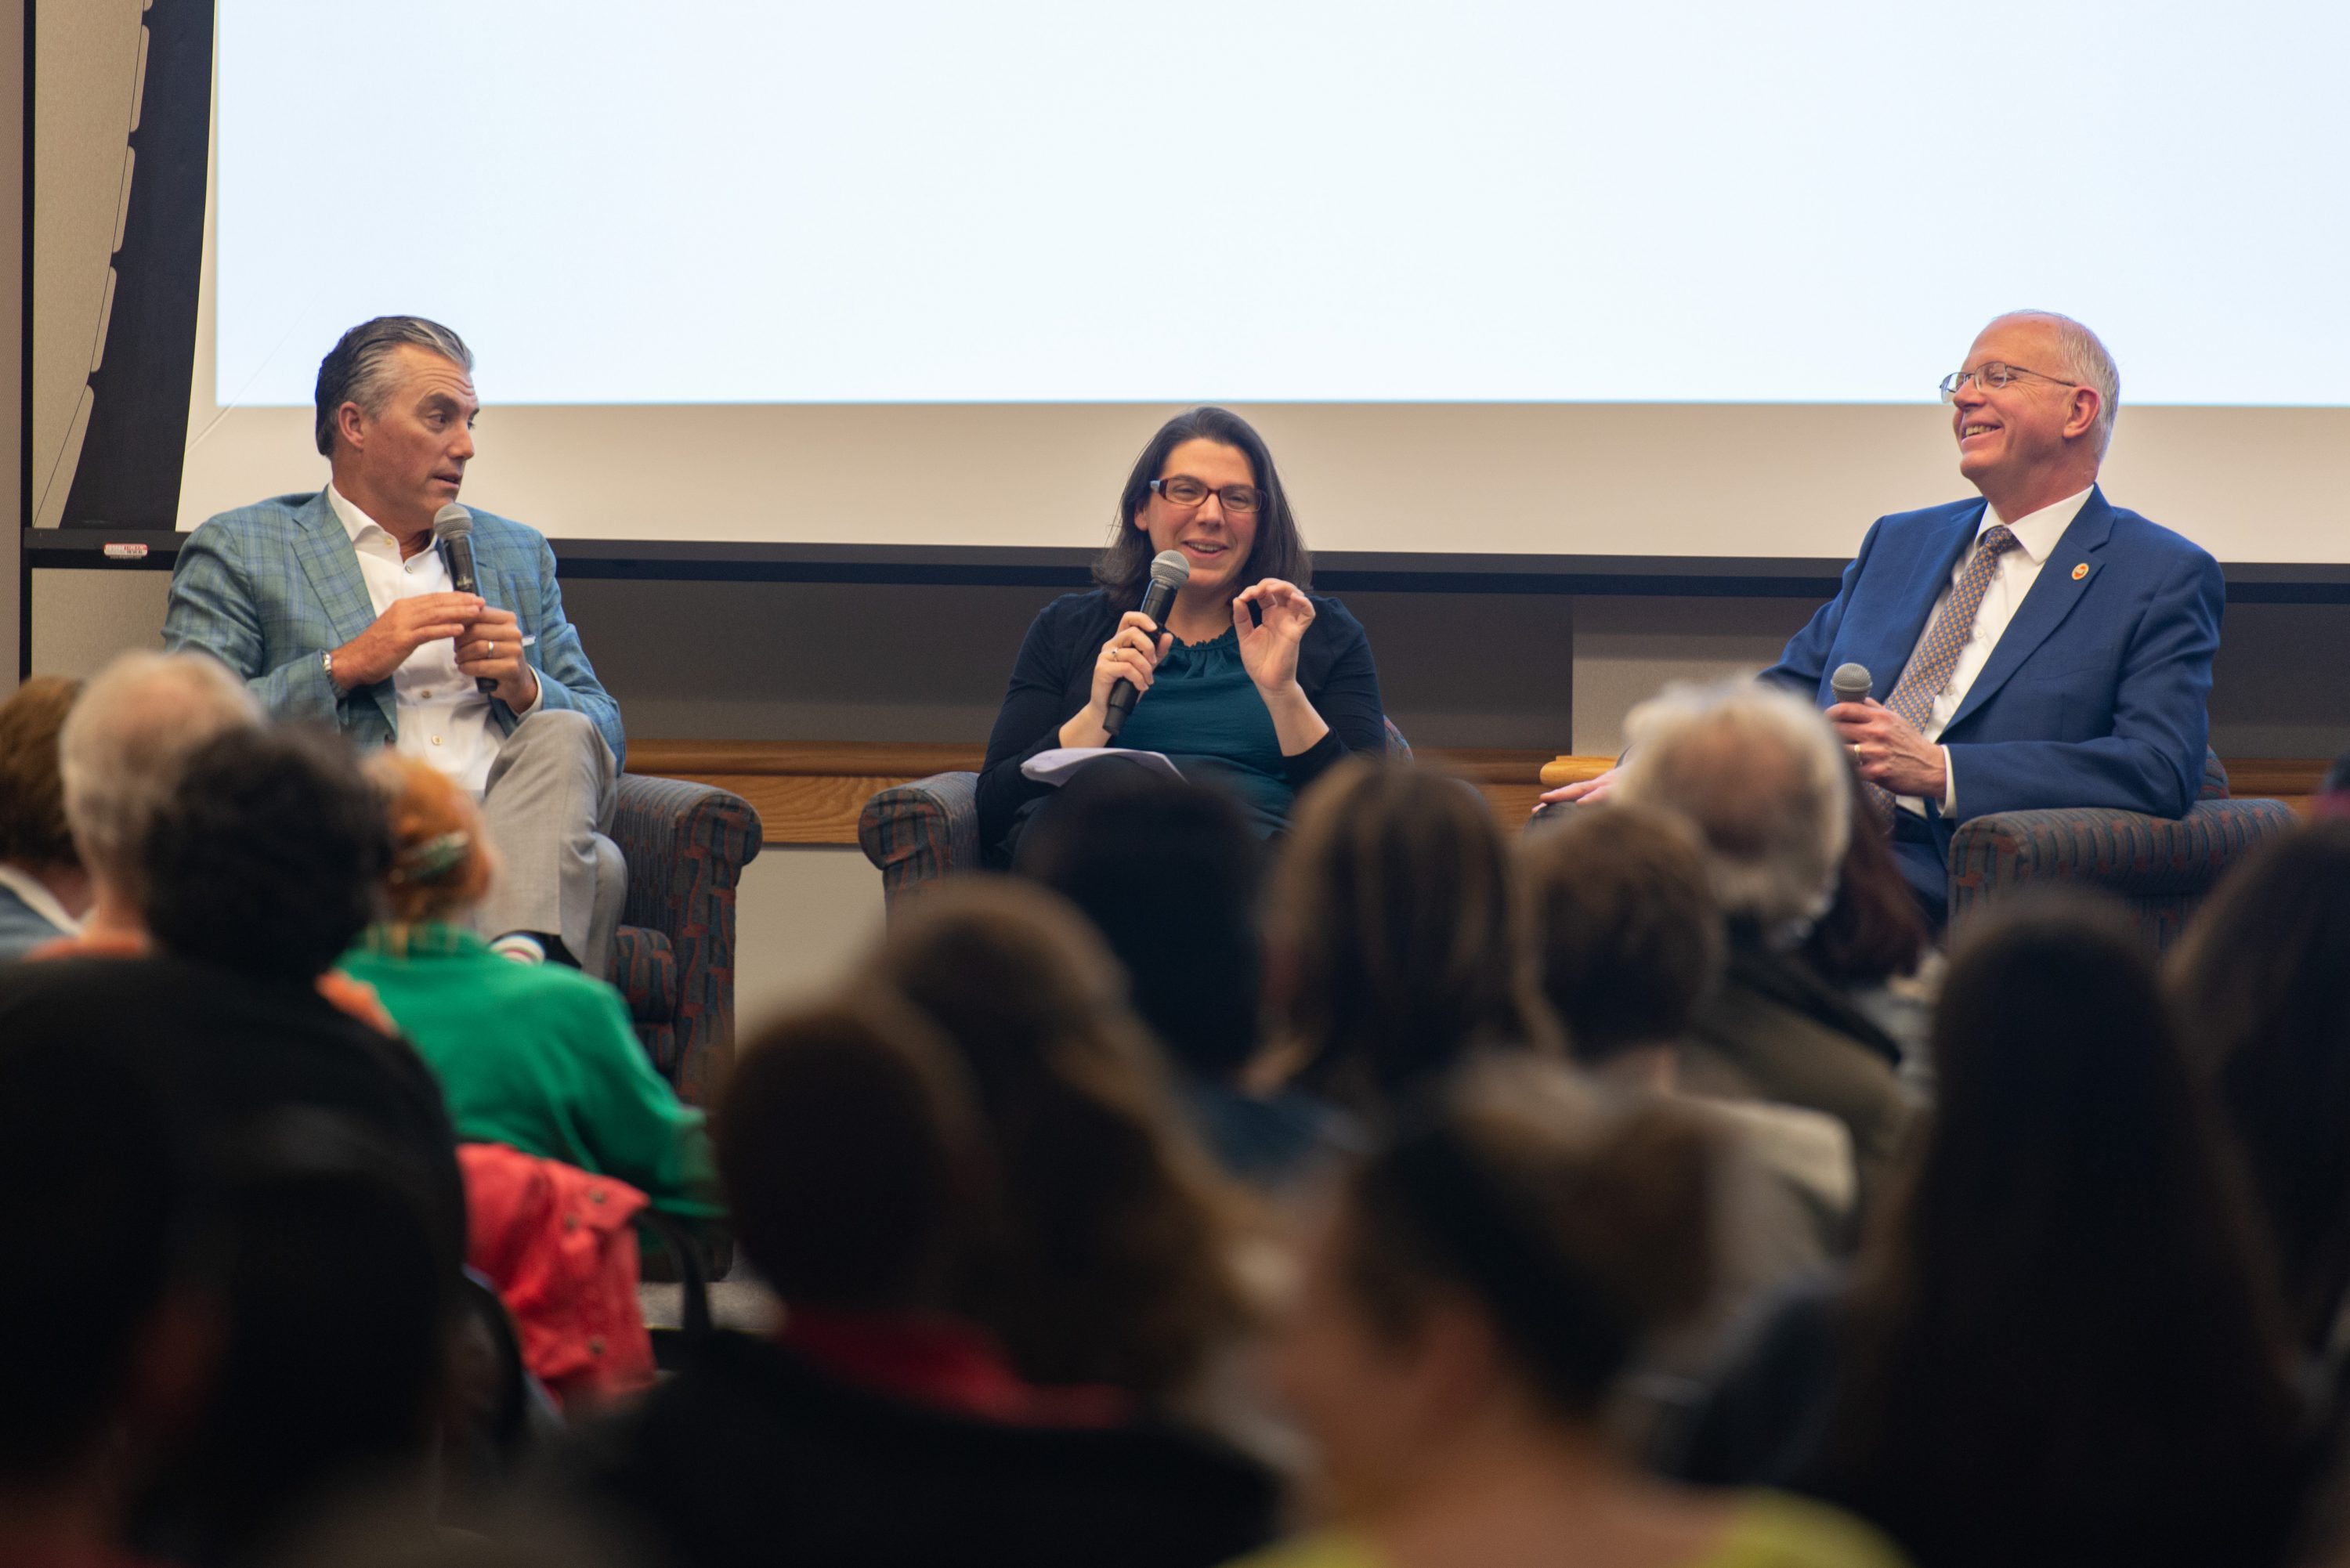 From left to right, Eric Berridge, Amanda Roth, and David C. Munson speak at the May 2019 Monroe Community College Institute for the Humanities.